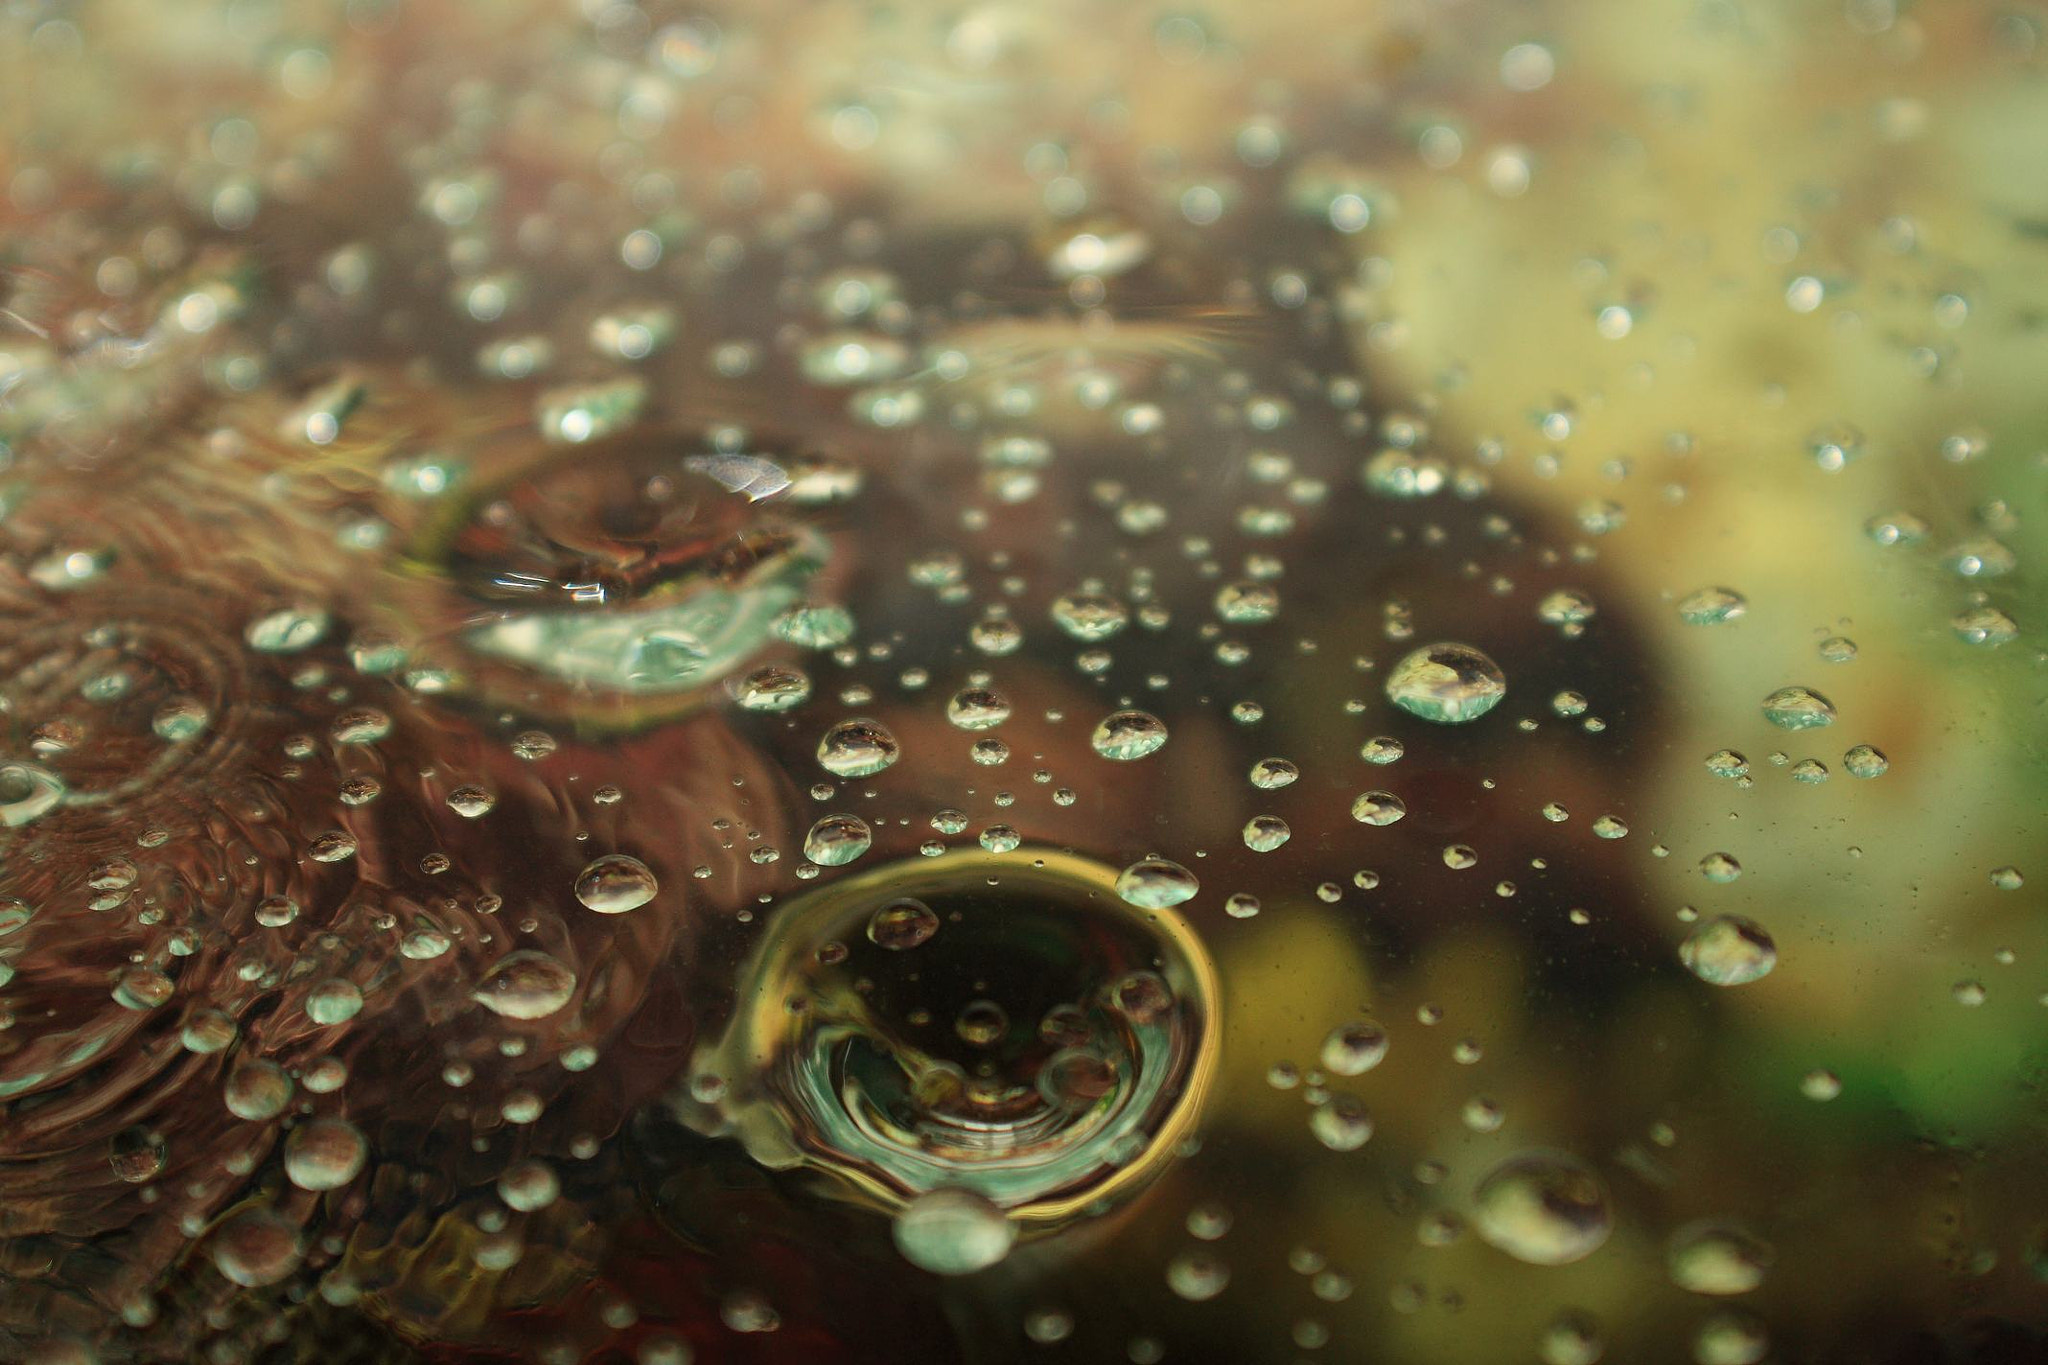 Photograph drops by Alexey Vishnyakov on 500px